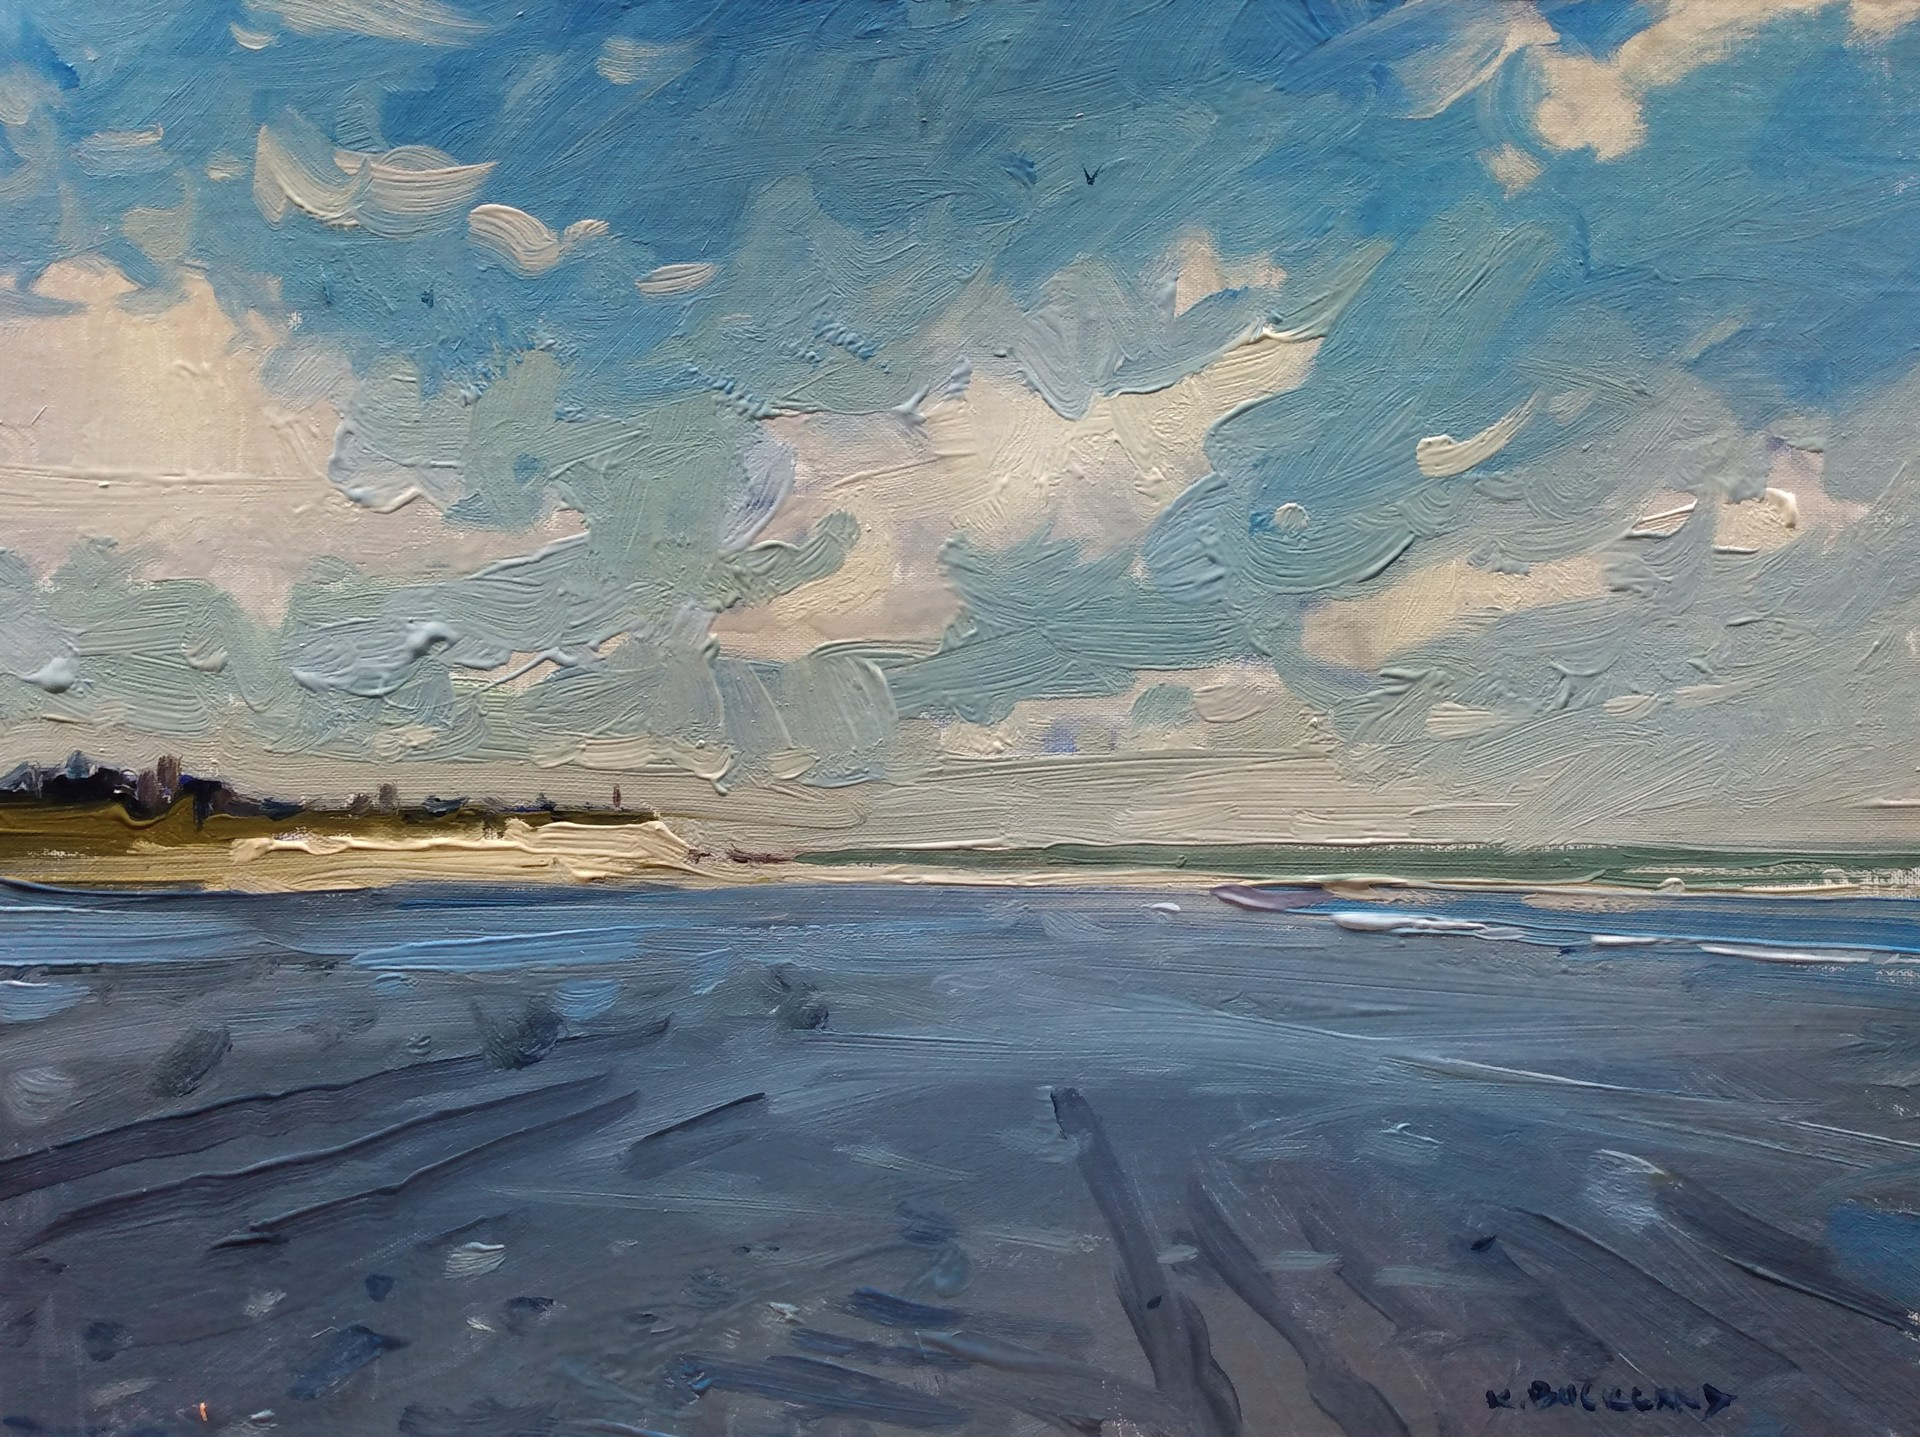 The Cloud Shadow - Folly Beach by Kyle Buckland